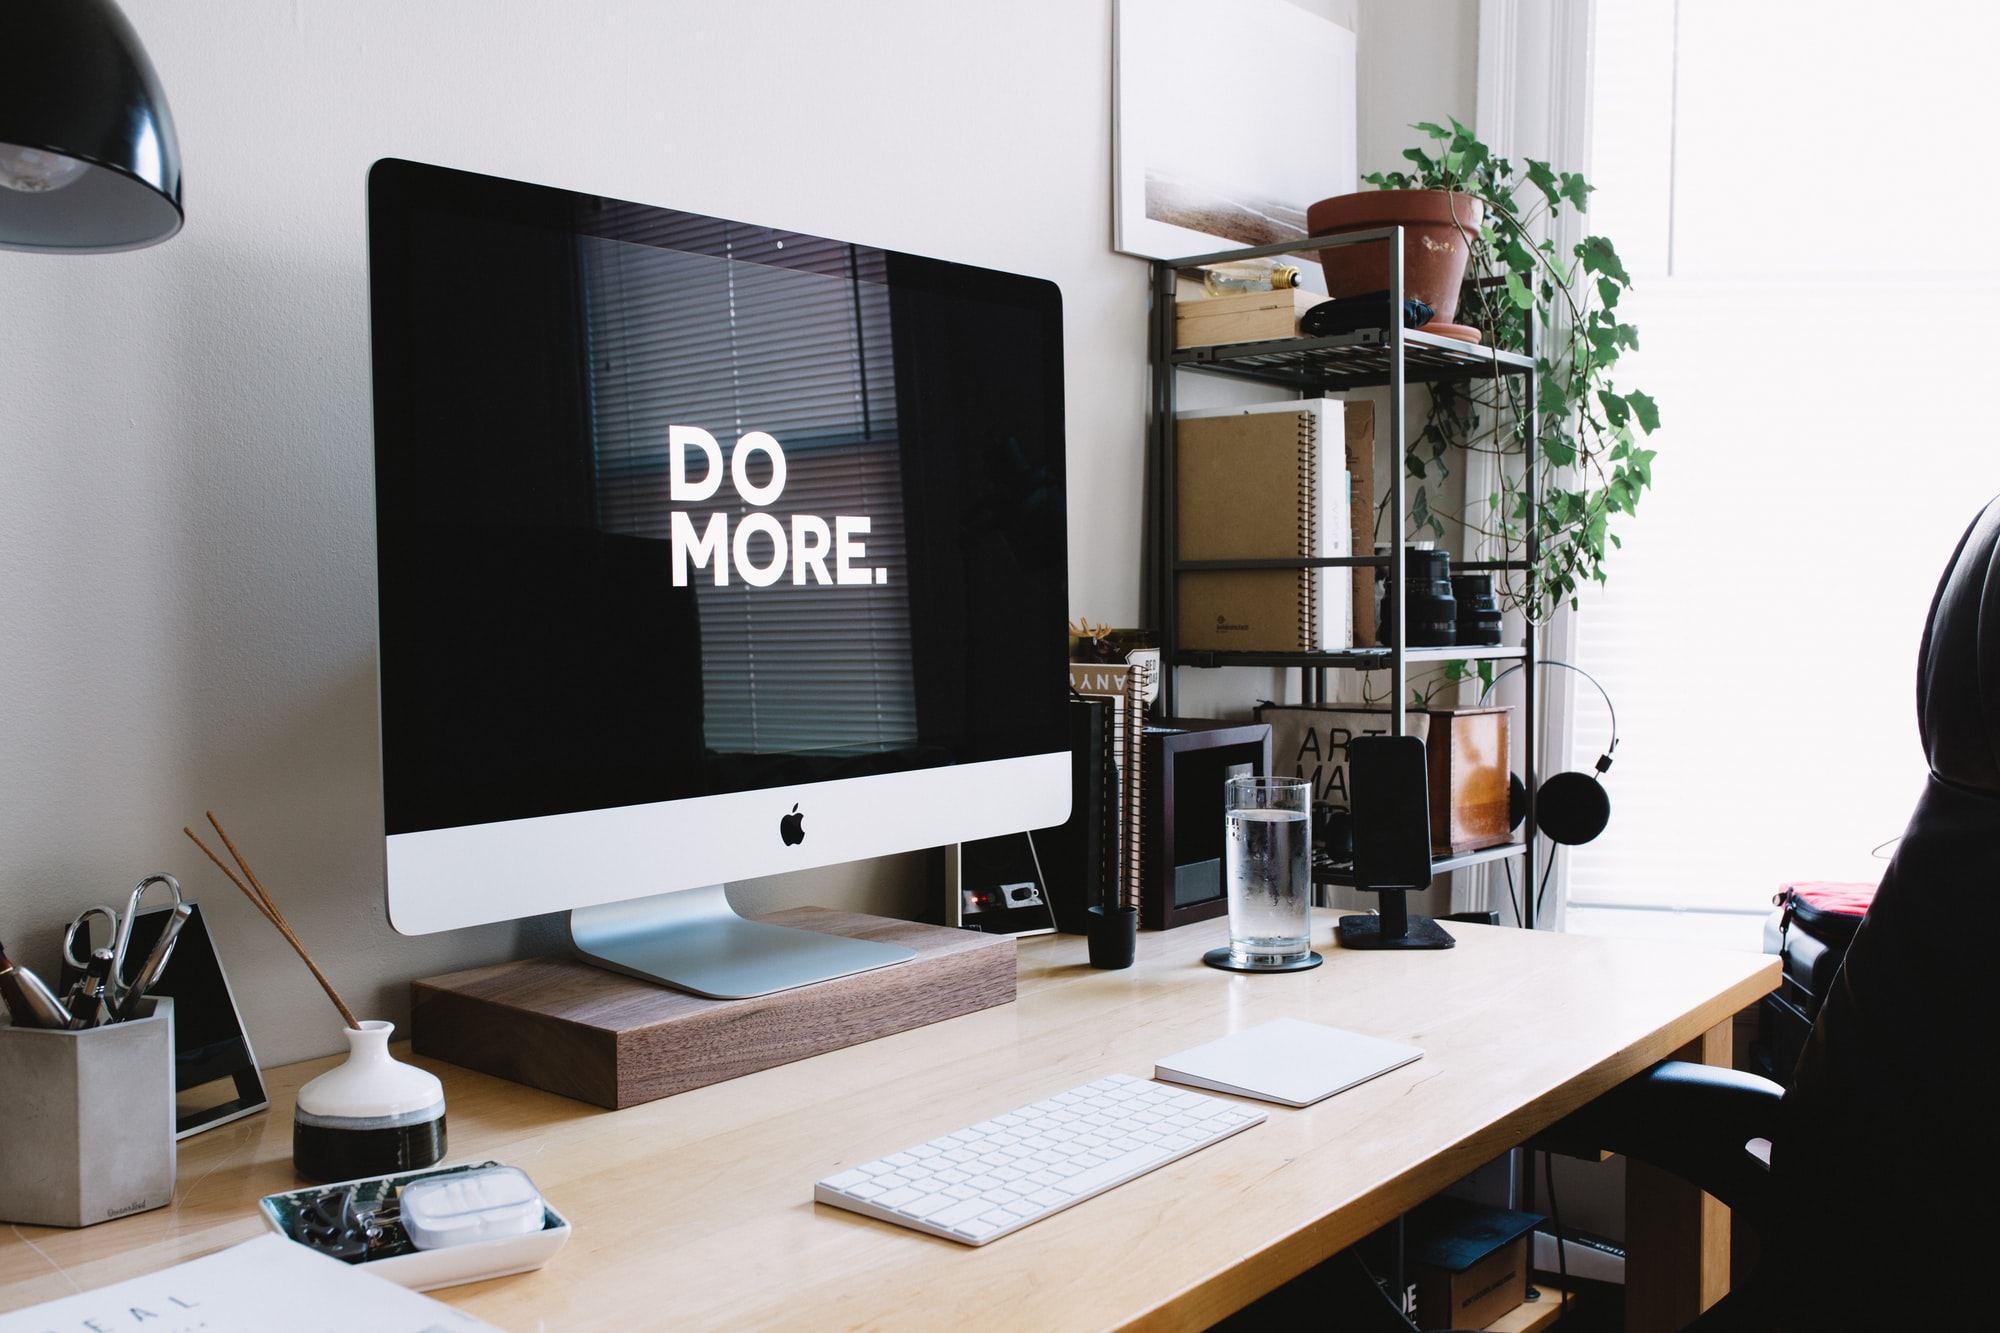 Tools to Defeat Distractions